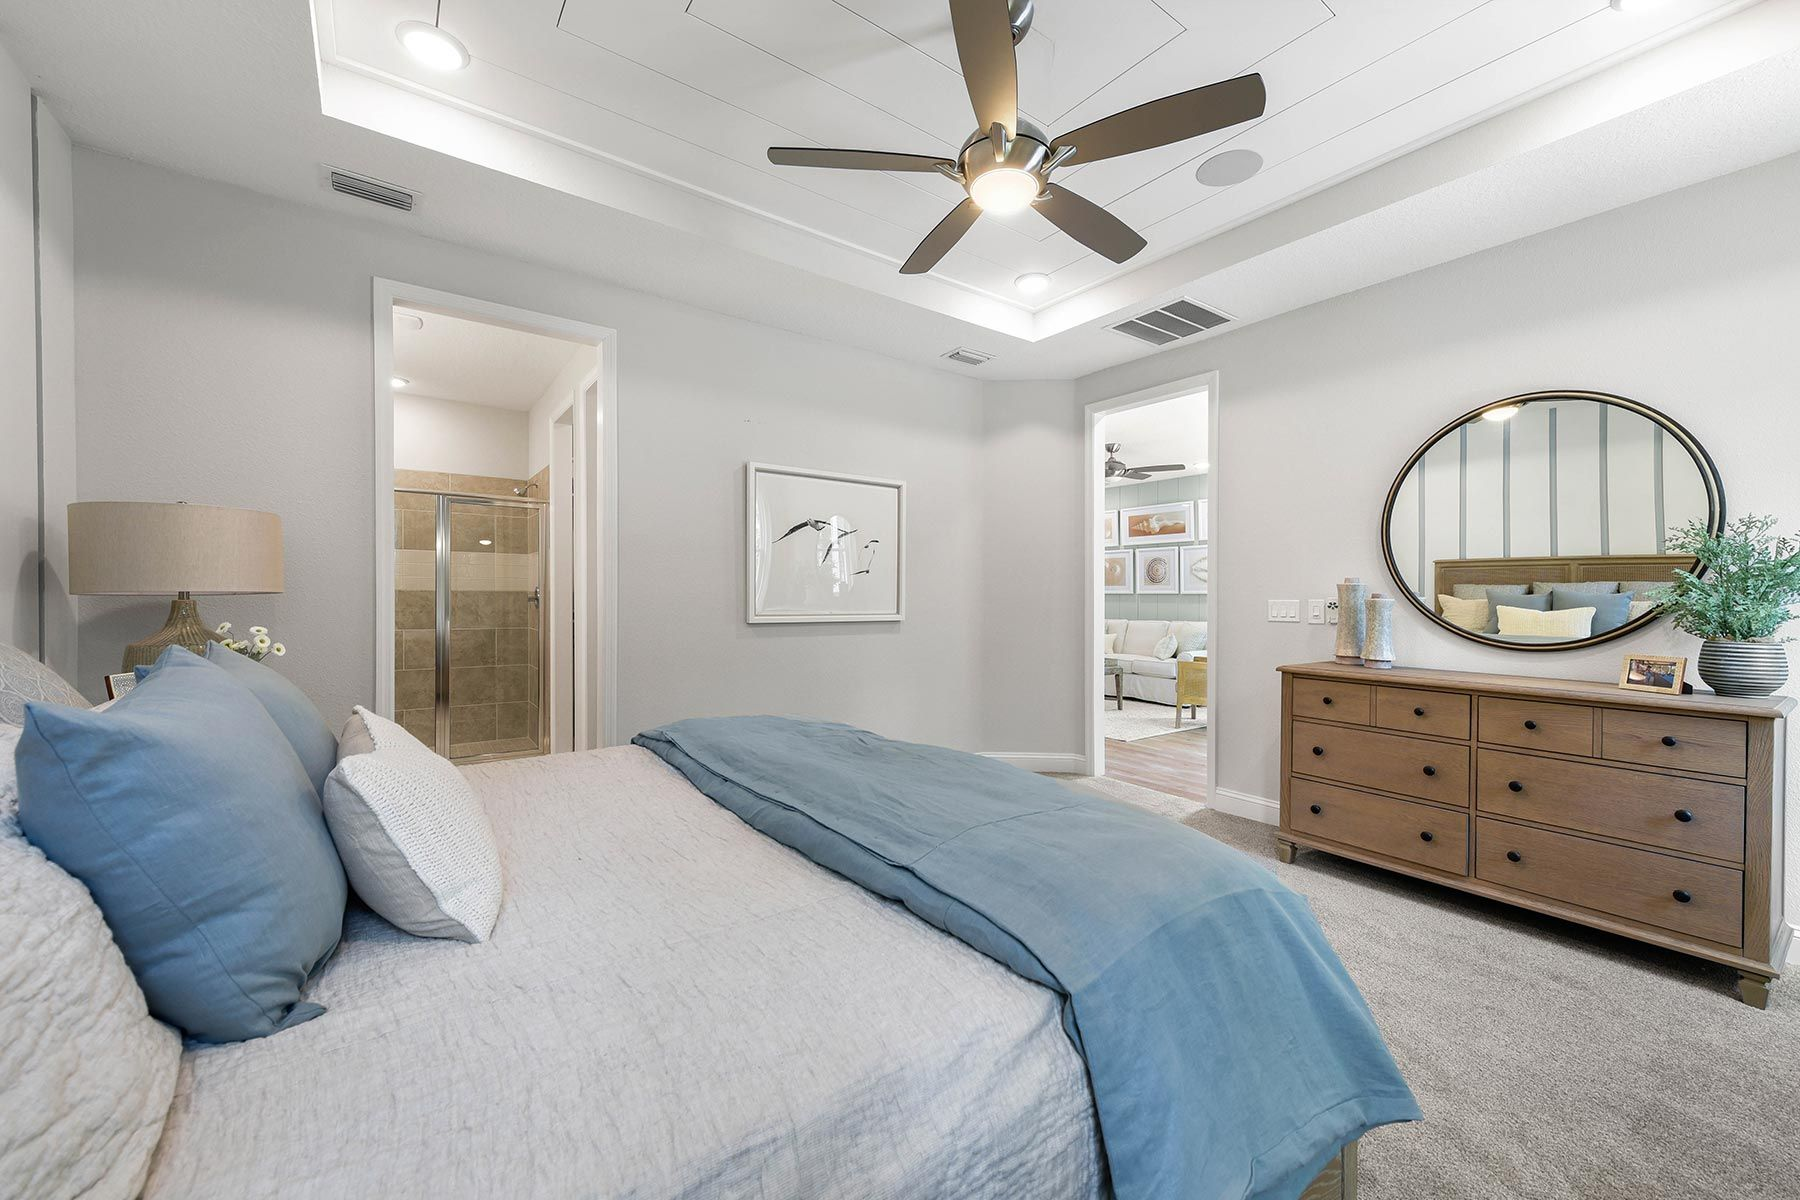 Bedroom featured in the Ocean By Mattamy Homes in Jacksonville-St. Augustine, FL